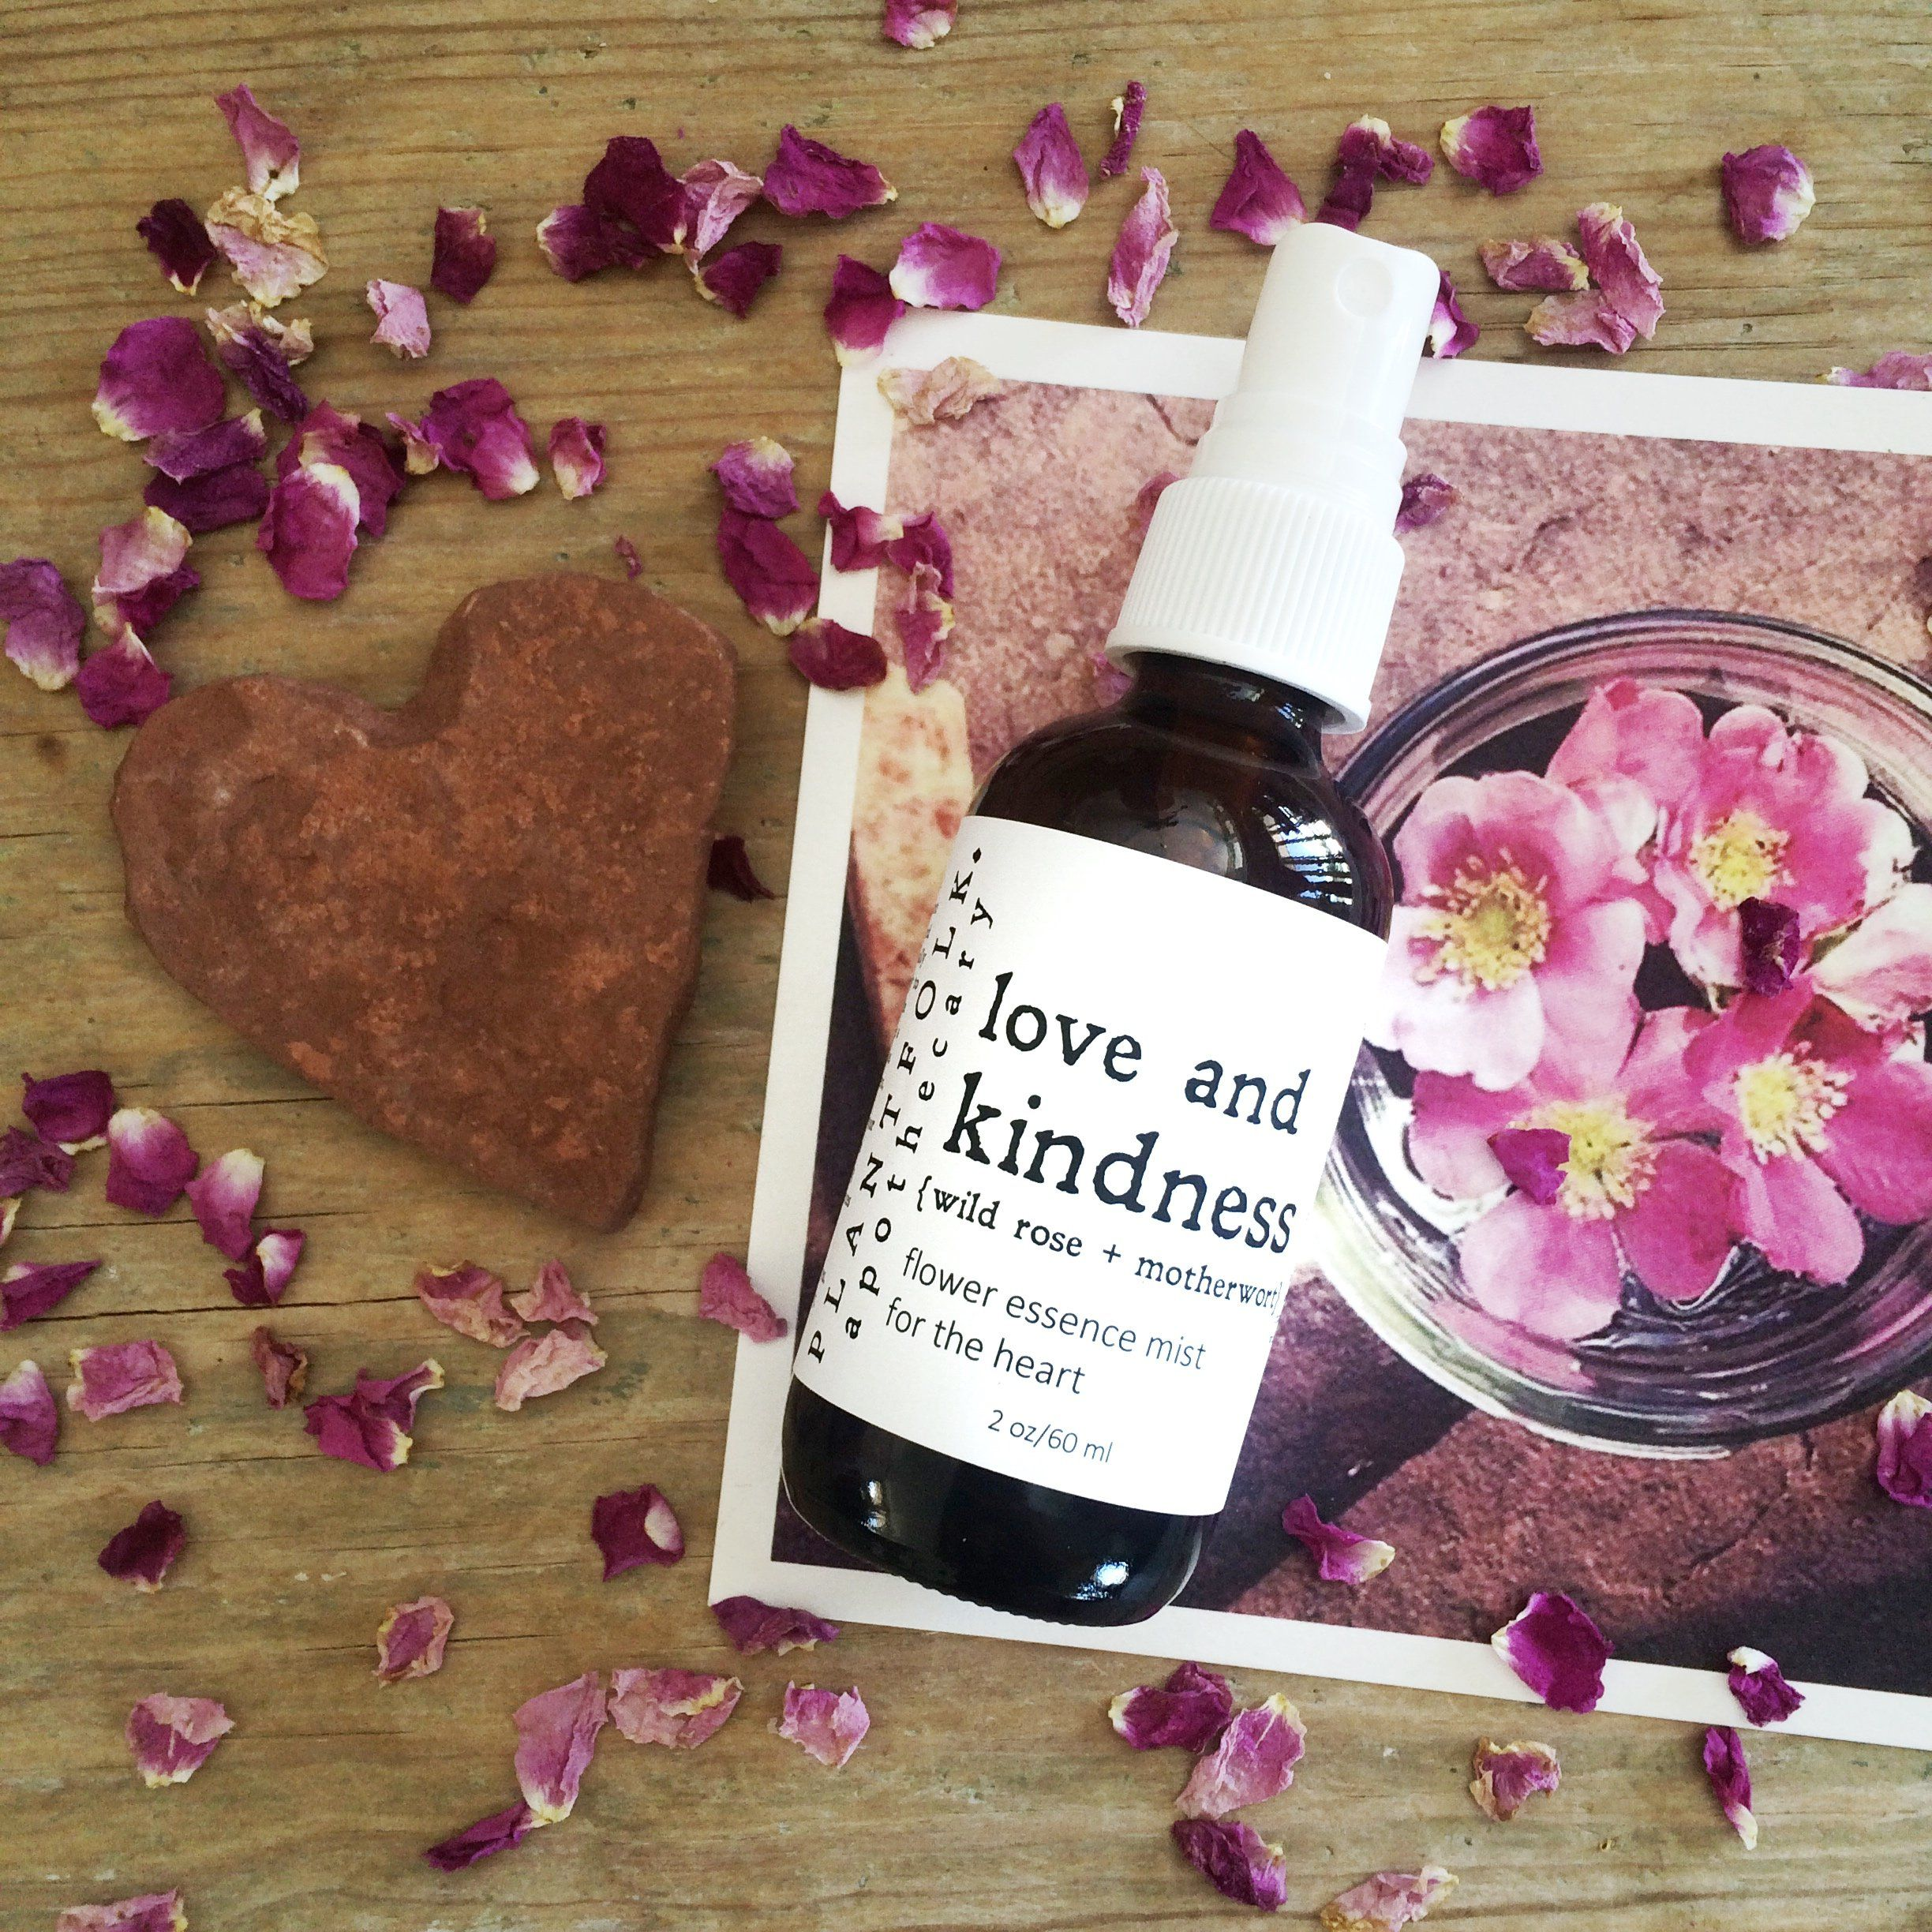 Love and Kindness {wild rose + motherwort} mist for the